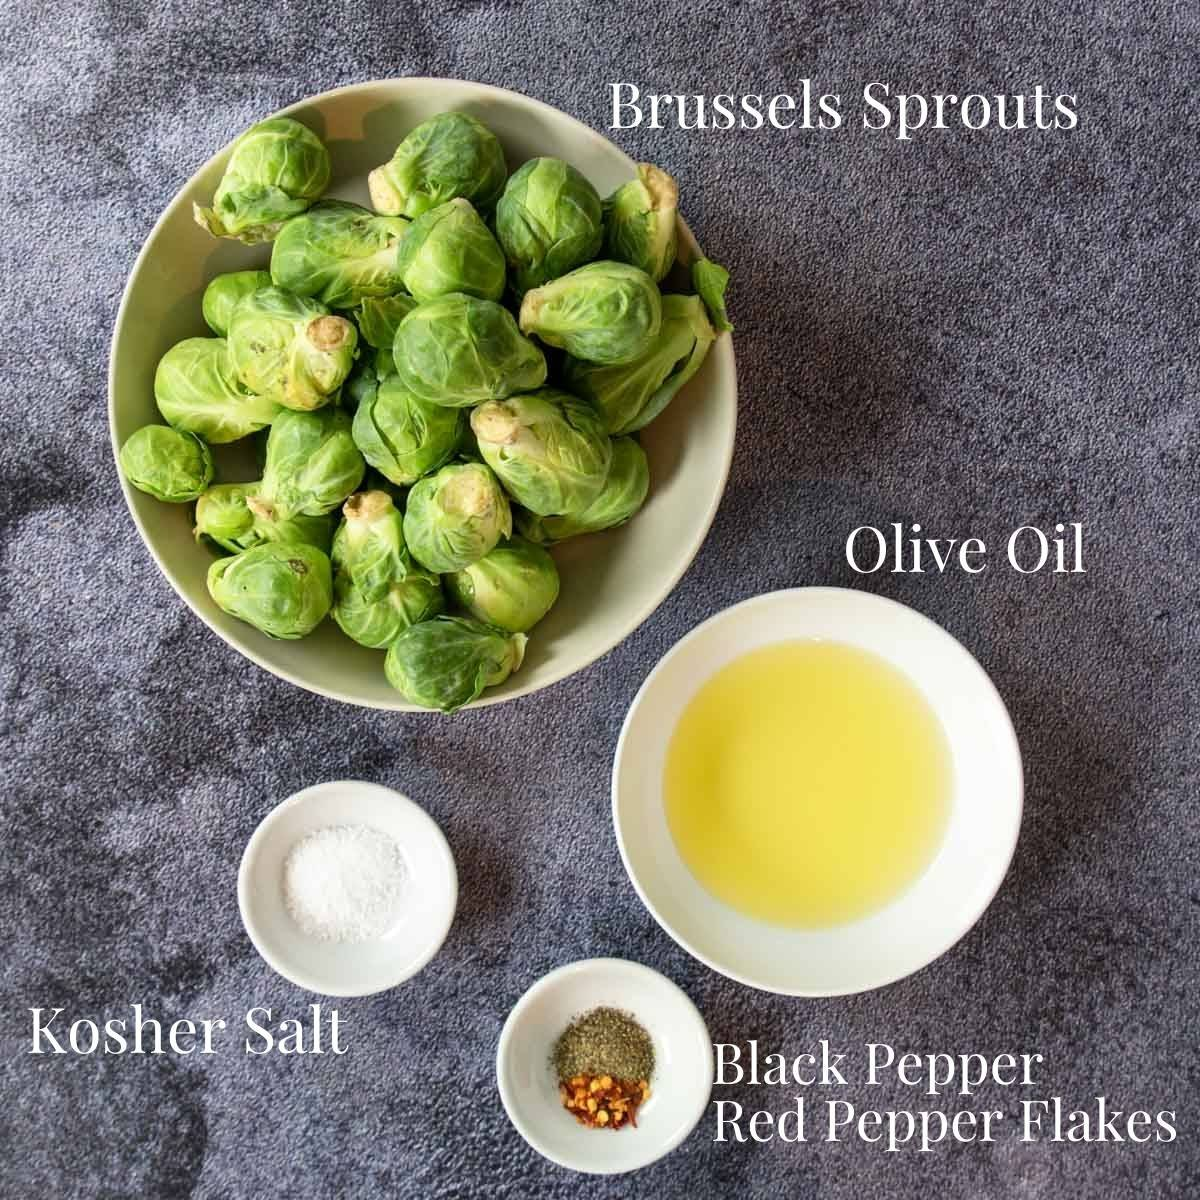 brussels sprouts ingredients on a table with labels